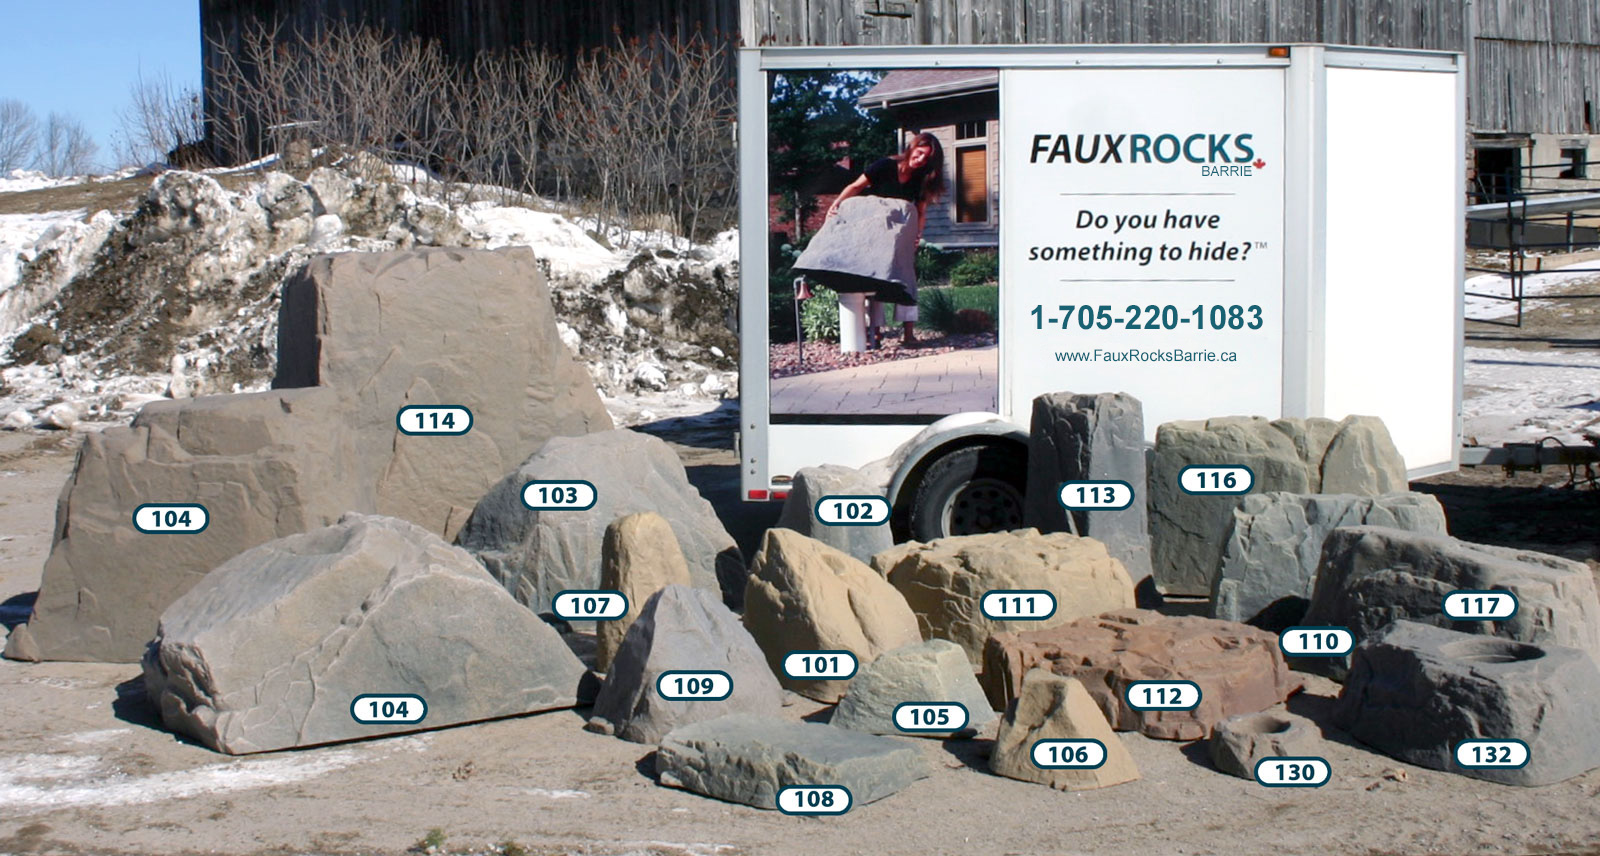 A group shot of the fake rocks